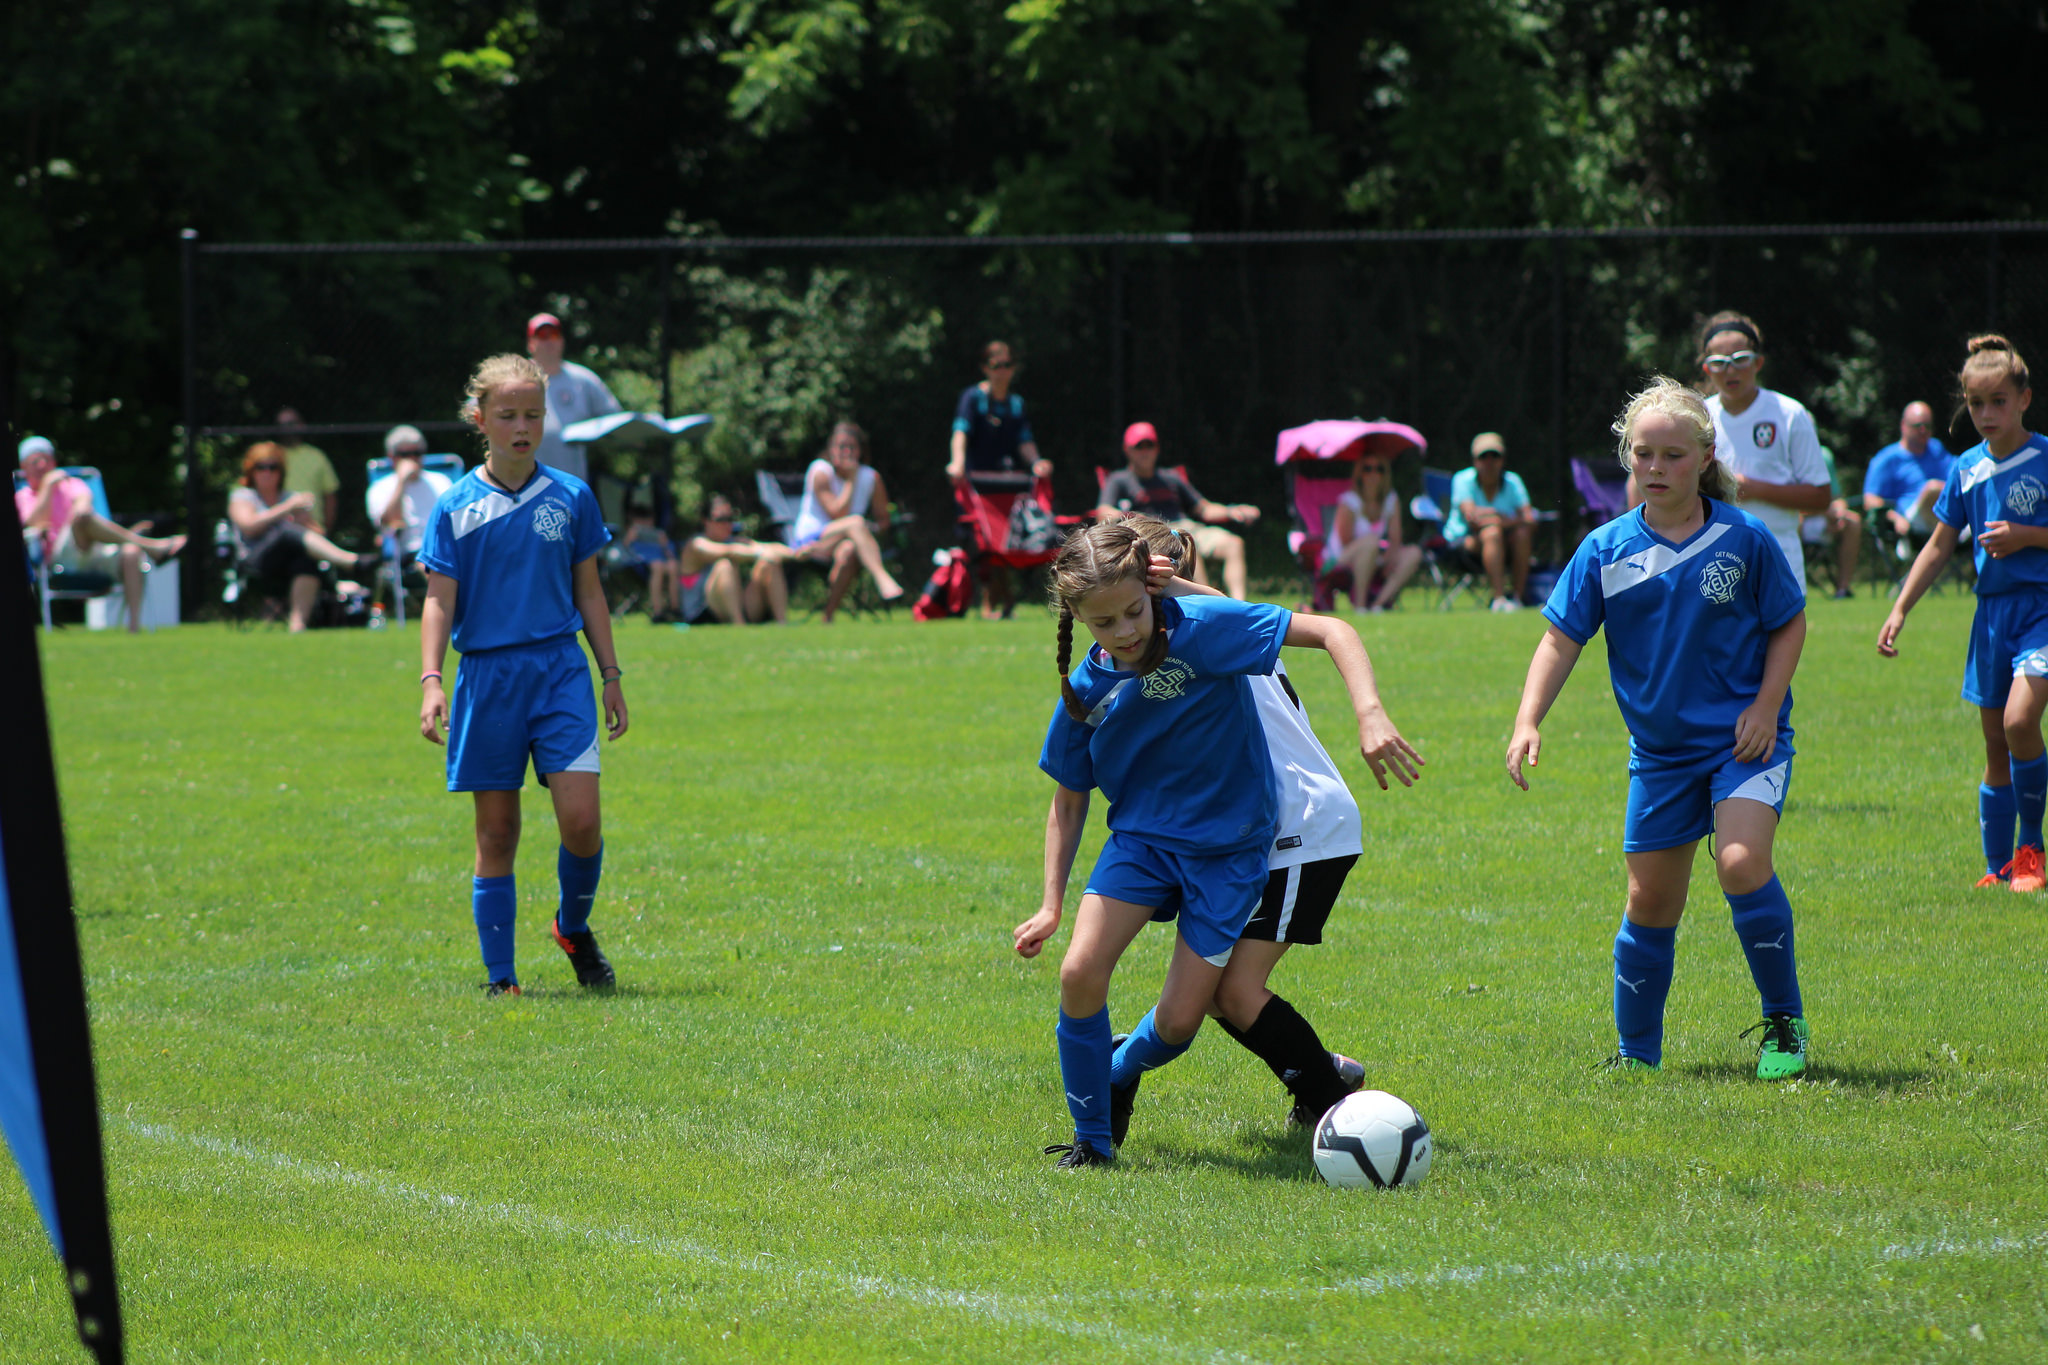 75a9ee057 Youth Soccer Camps, Training, Tournaments & Tours | UK Elite